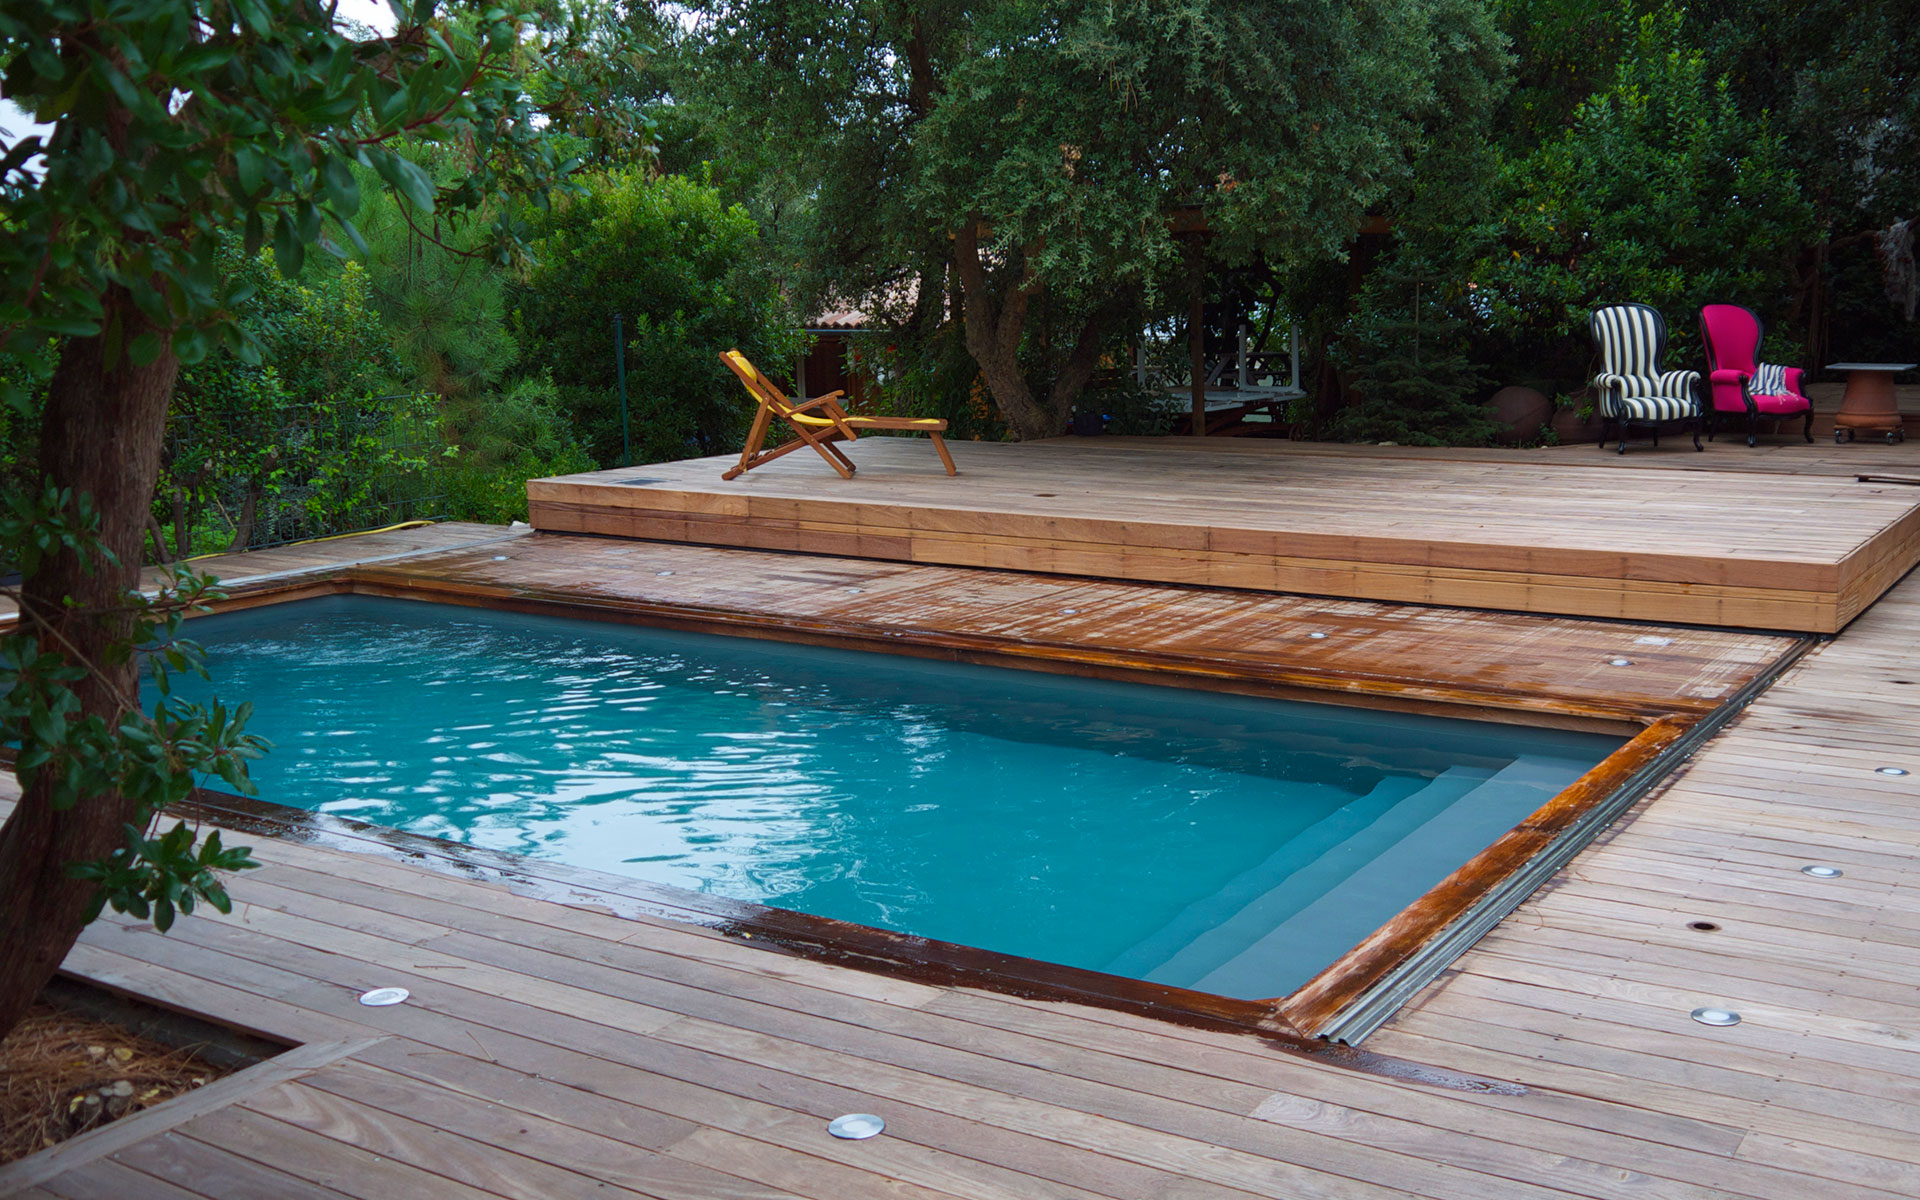 Terrasse mobile pour piscine hidden pool fond mobile for Prix piscine terrasse